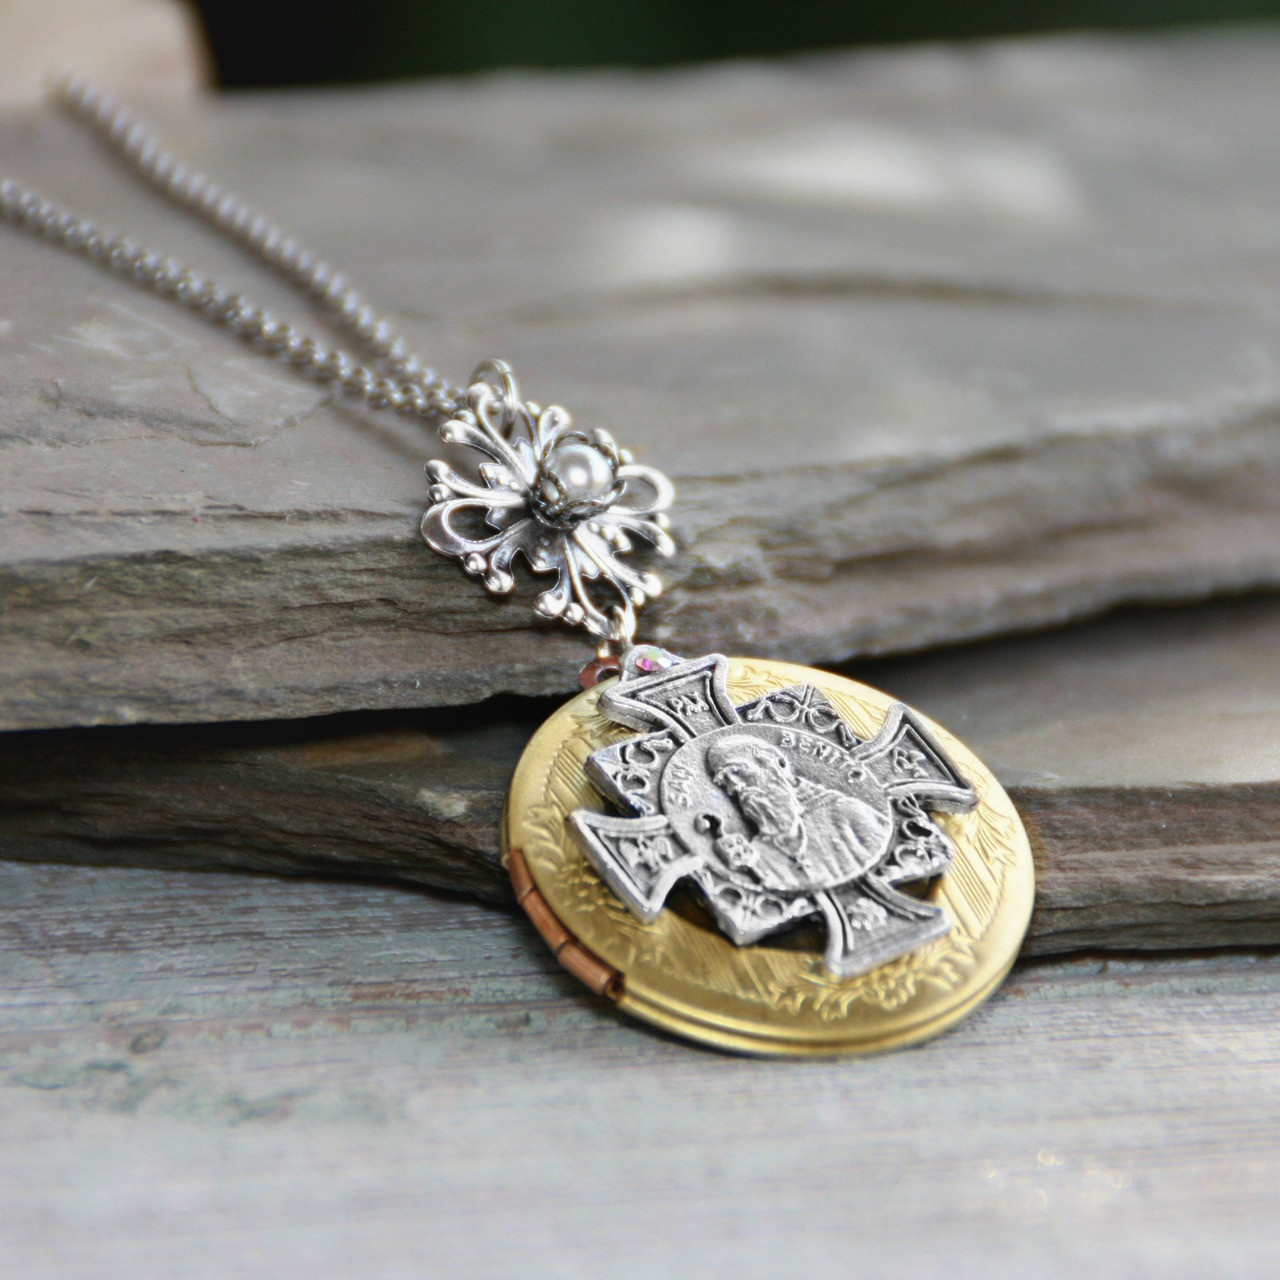 IN-639  Fabulous St. Benedict Locket Necklace